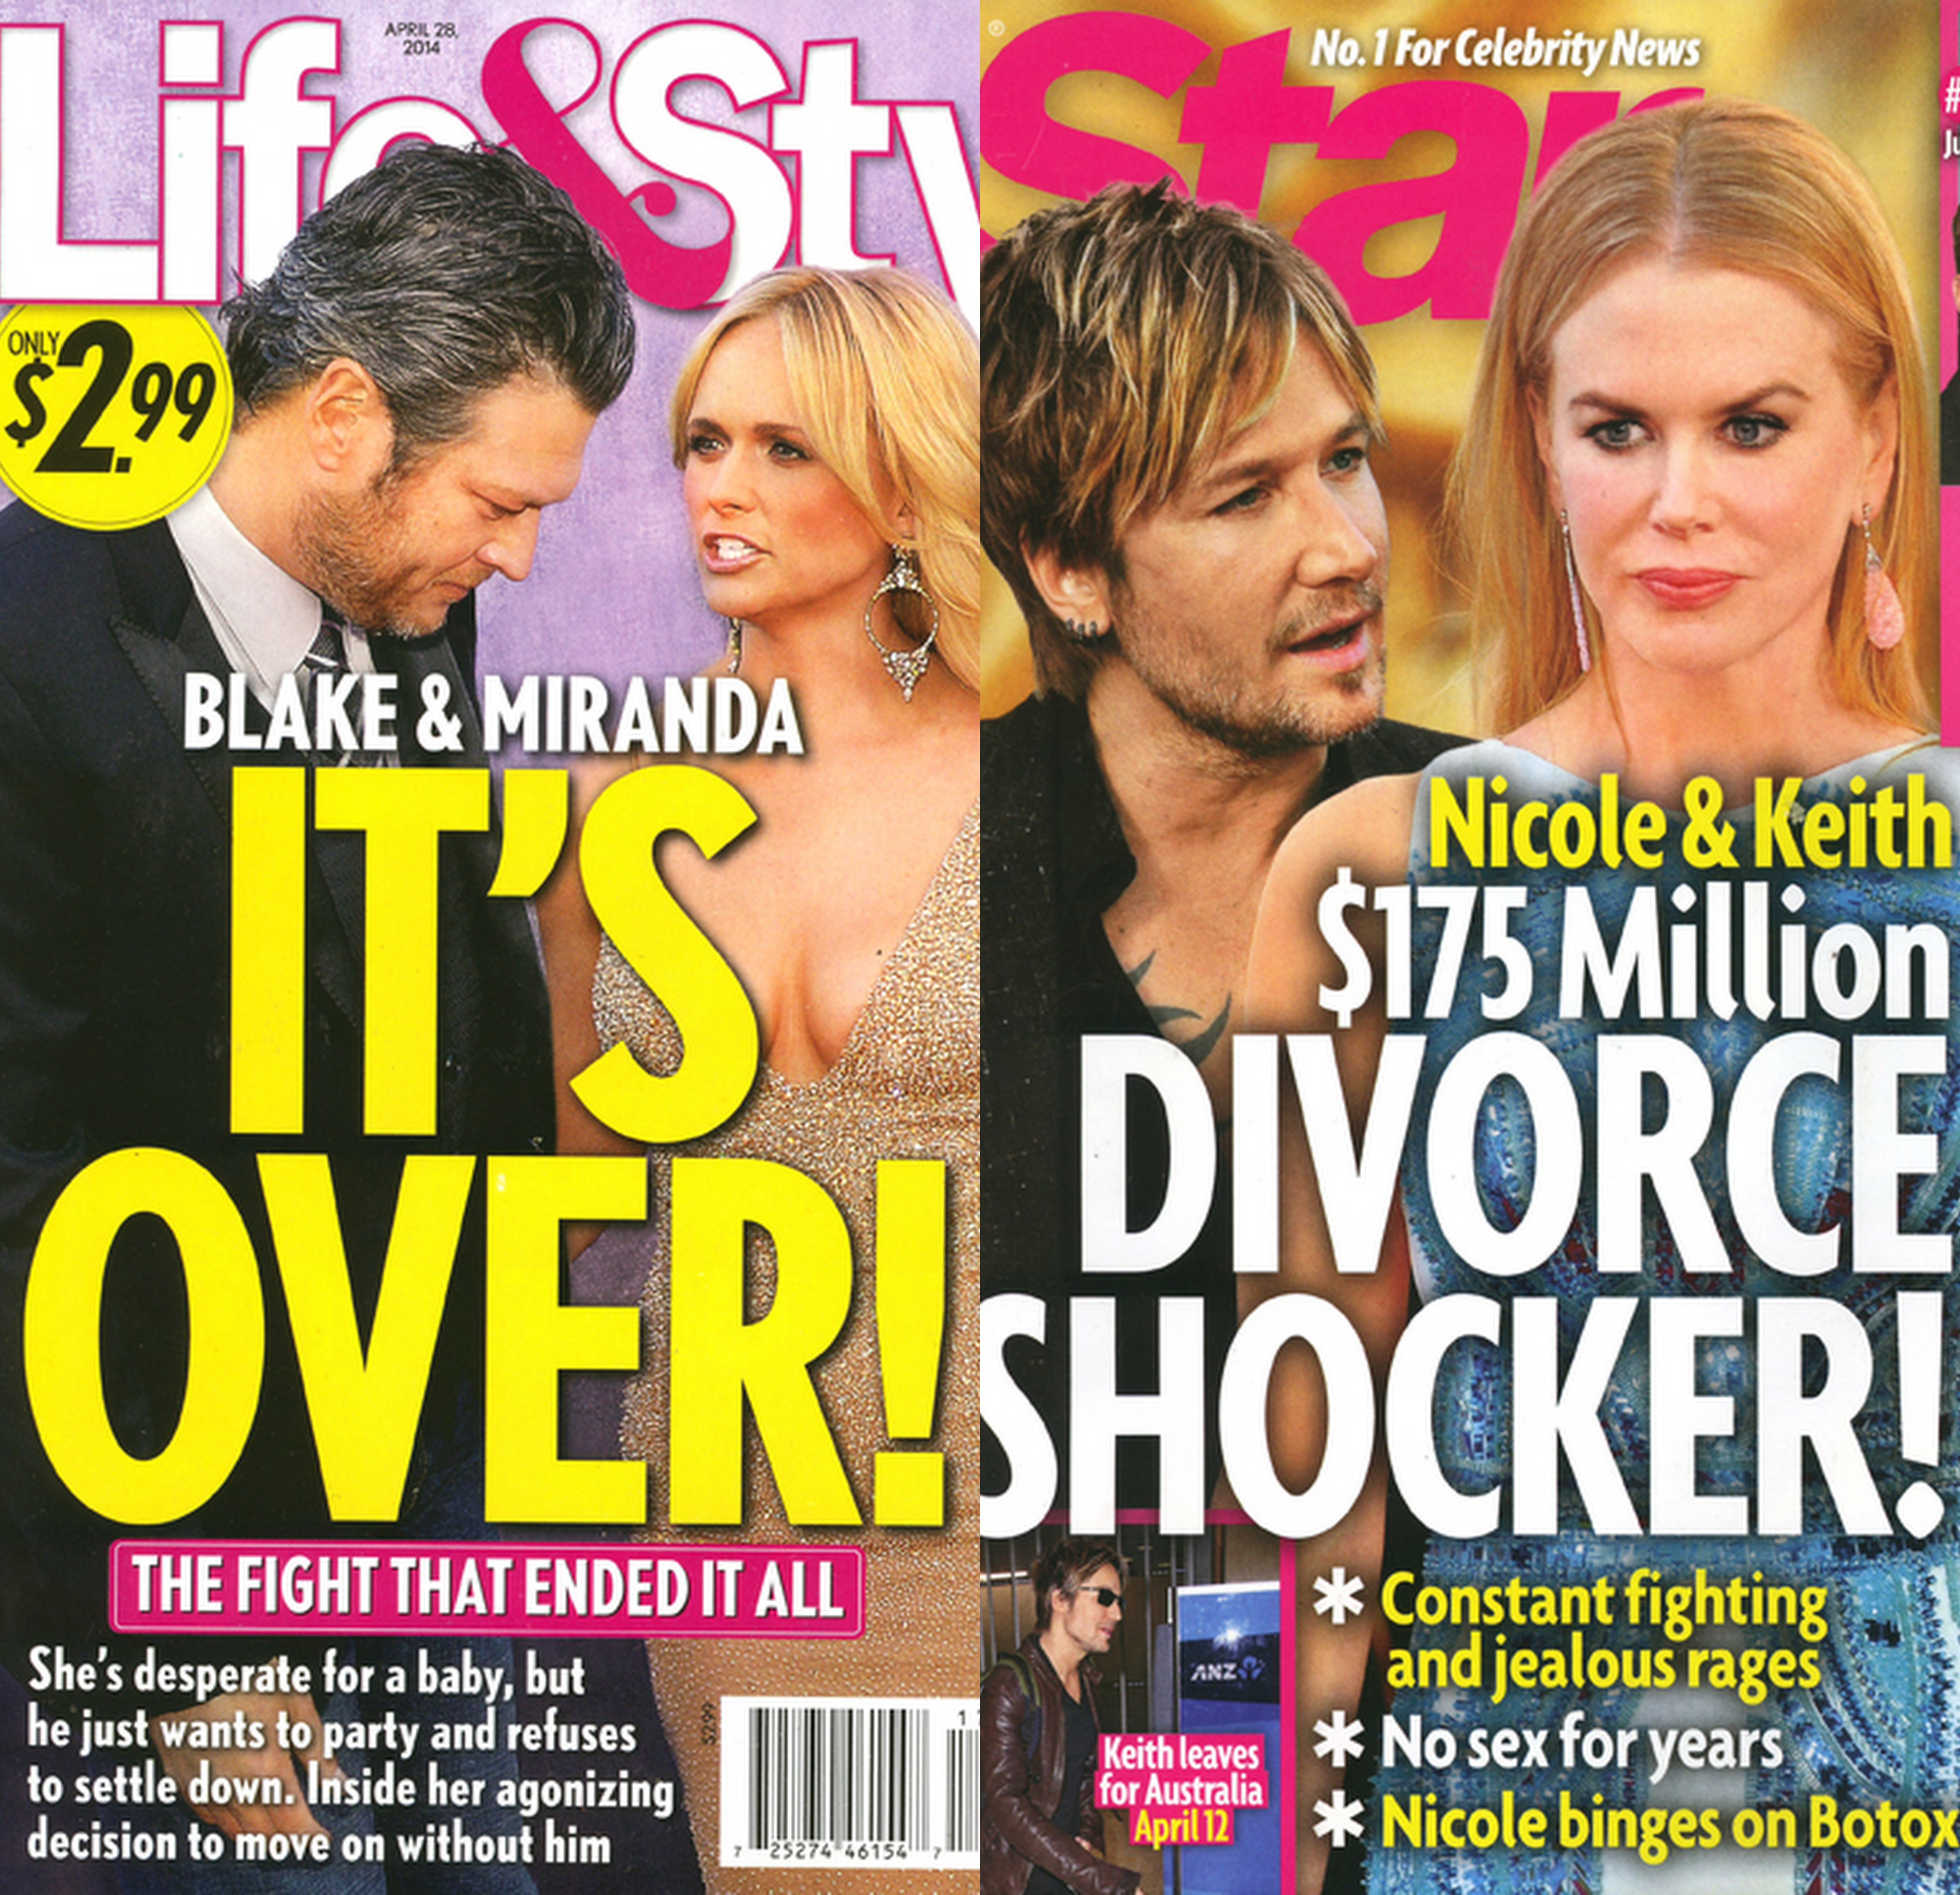 tabloid covers